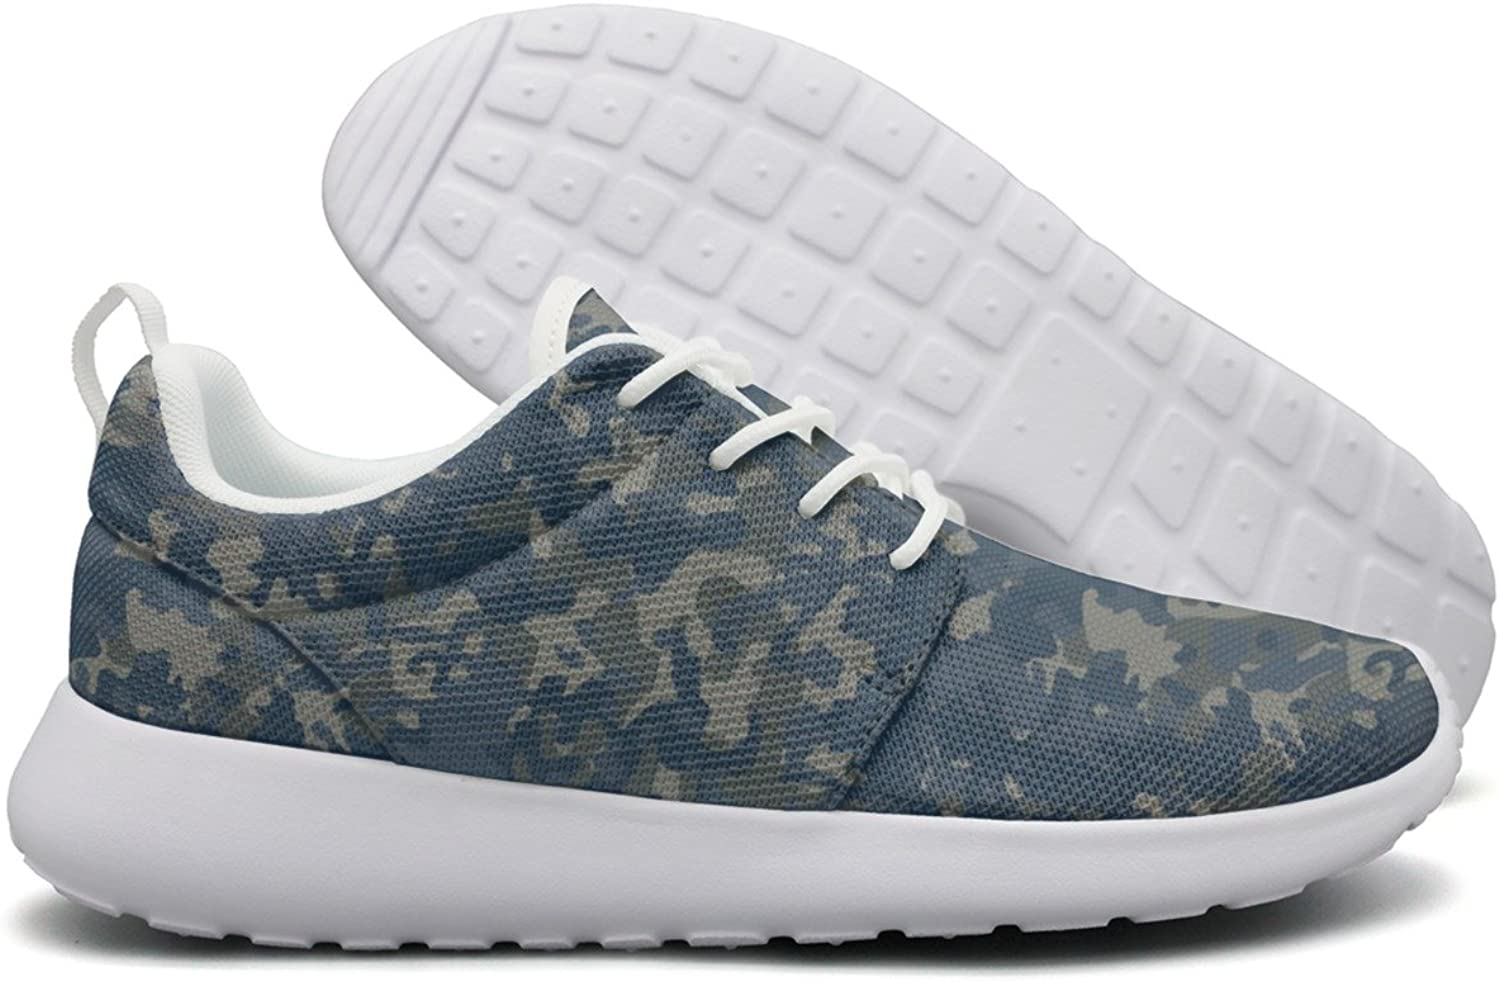 Hoohle Sports bluee Camouflage Womens Roshe One Flex Mesh Casual shoes for Men